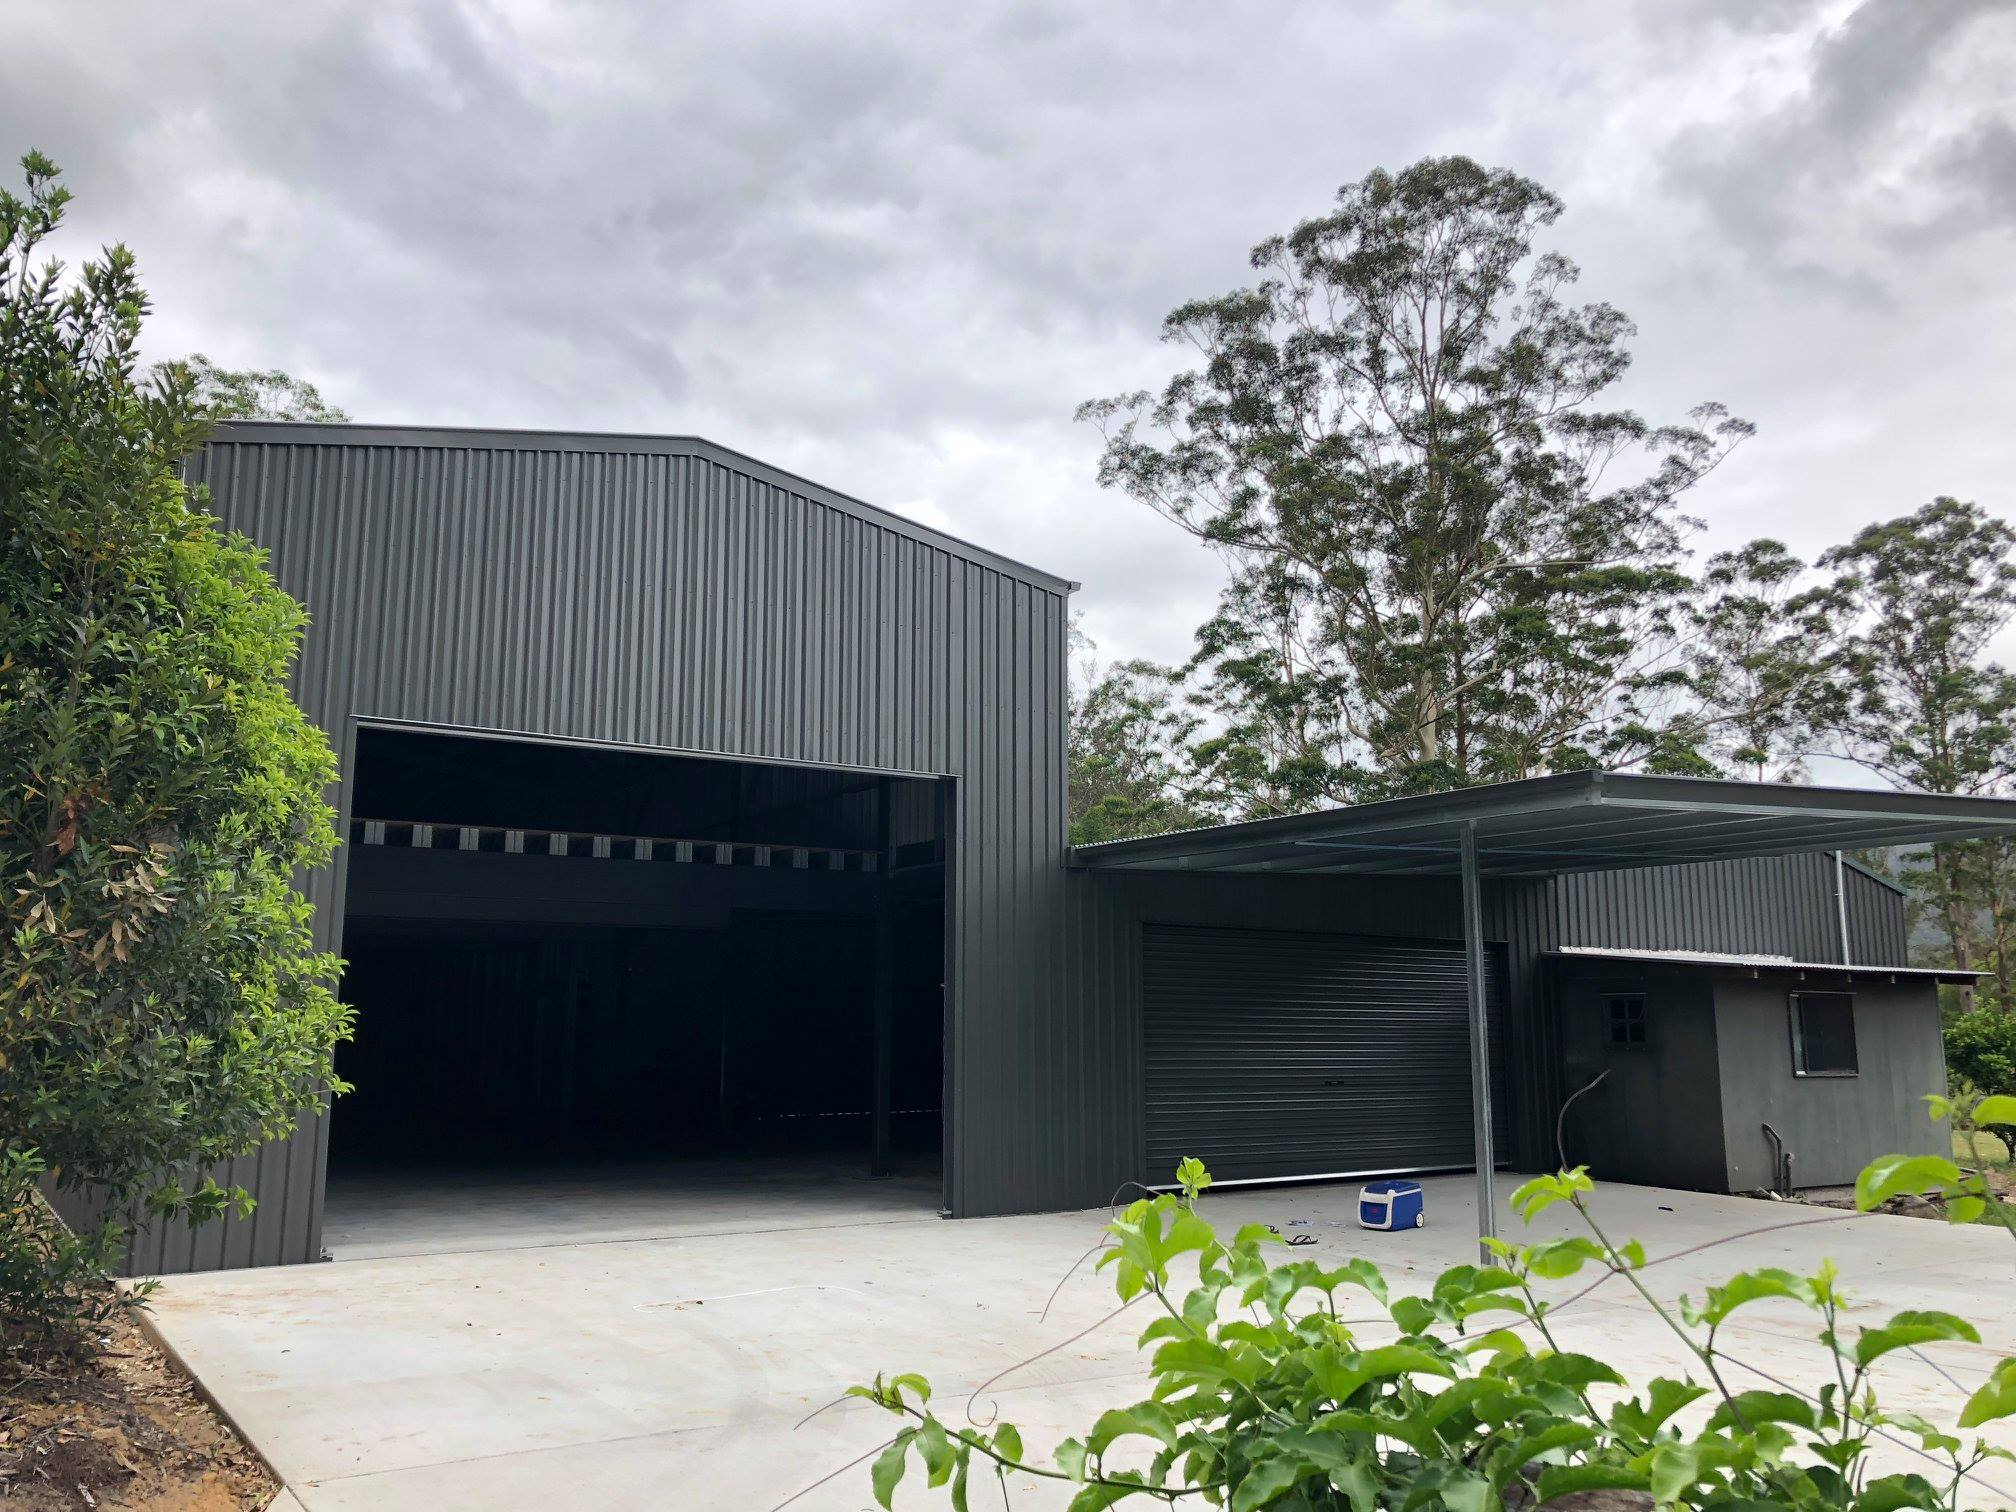 Gable black shed garage with owning added